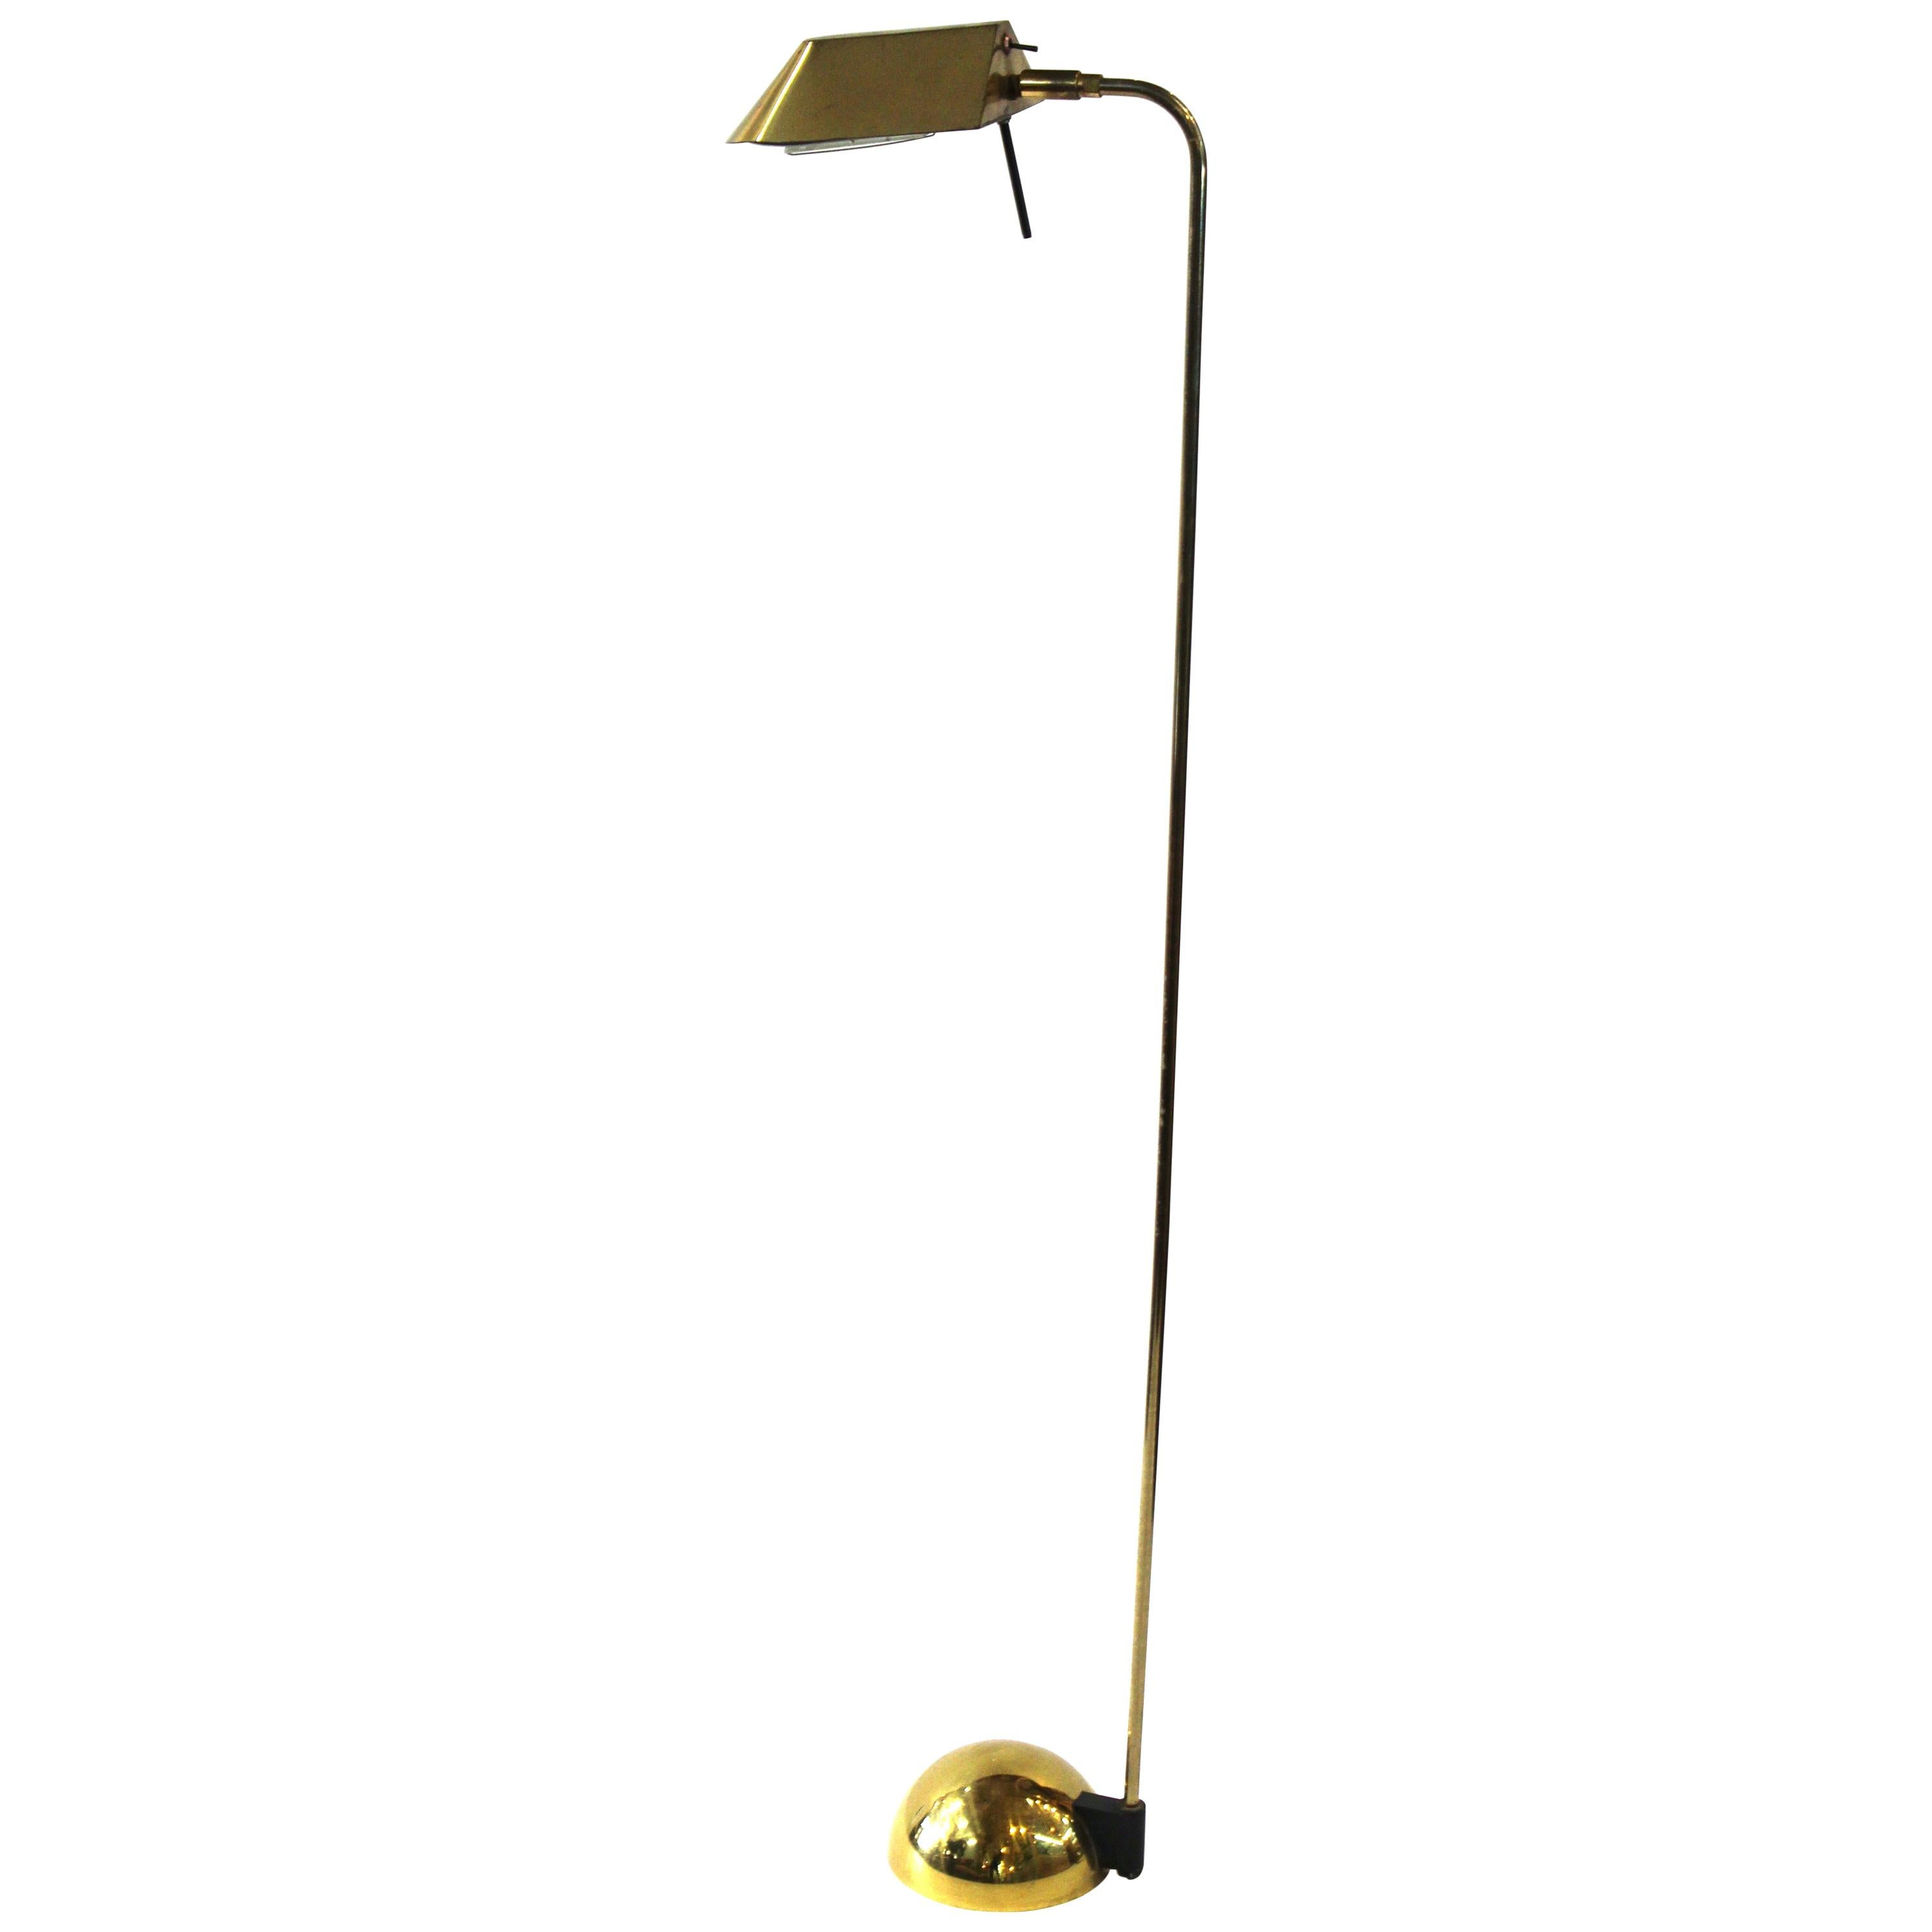 Modern Brass Floor Lamp or Reading Lamp with Adjustable Shade